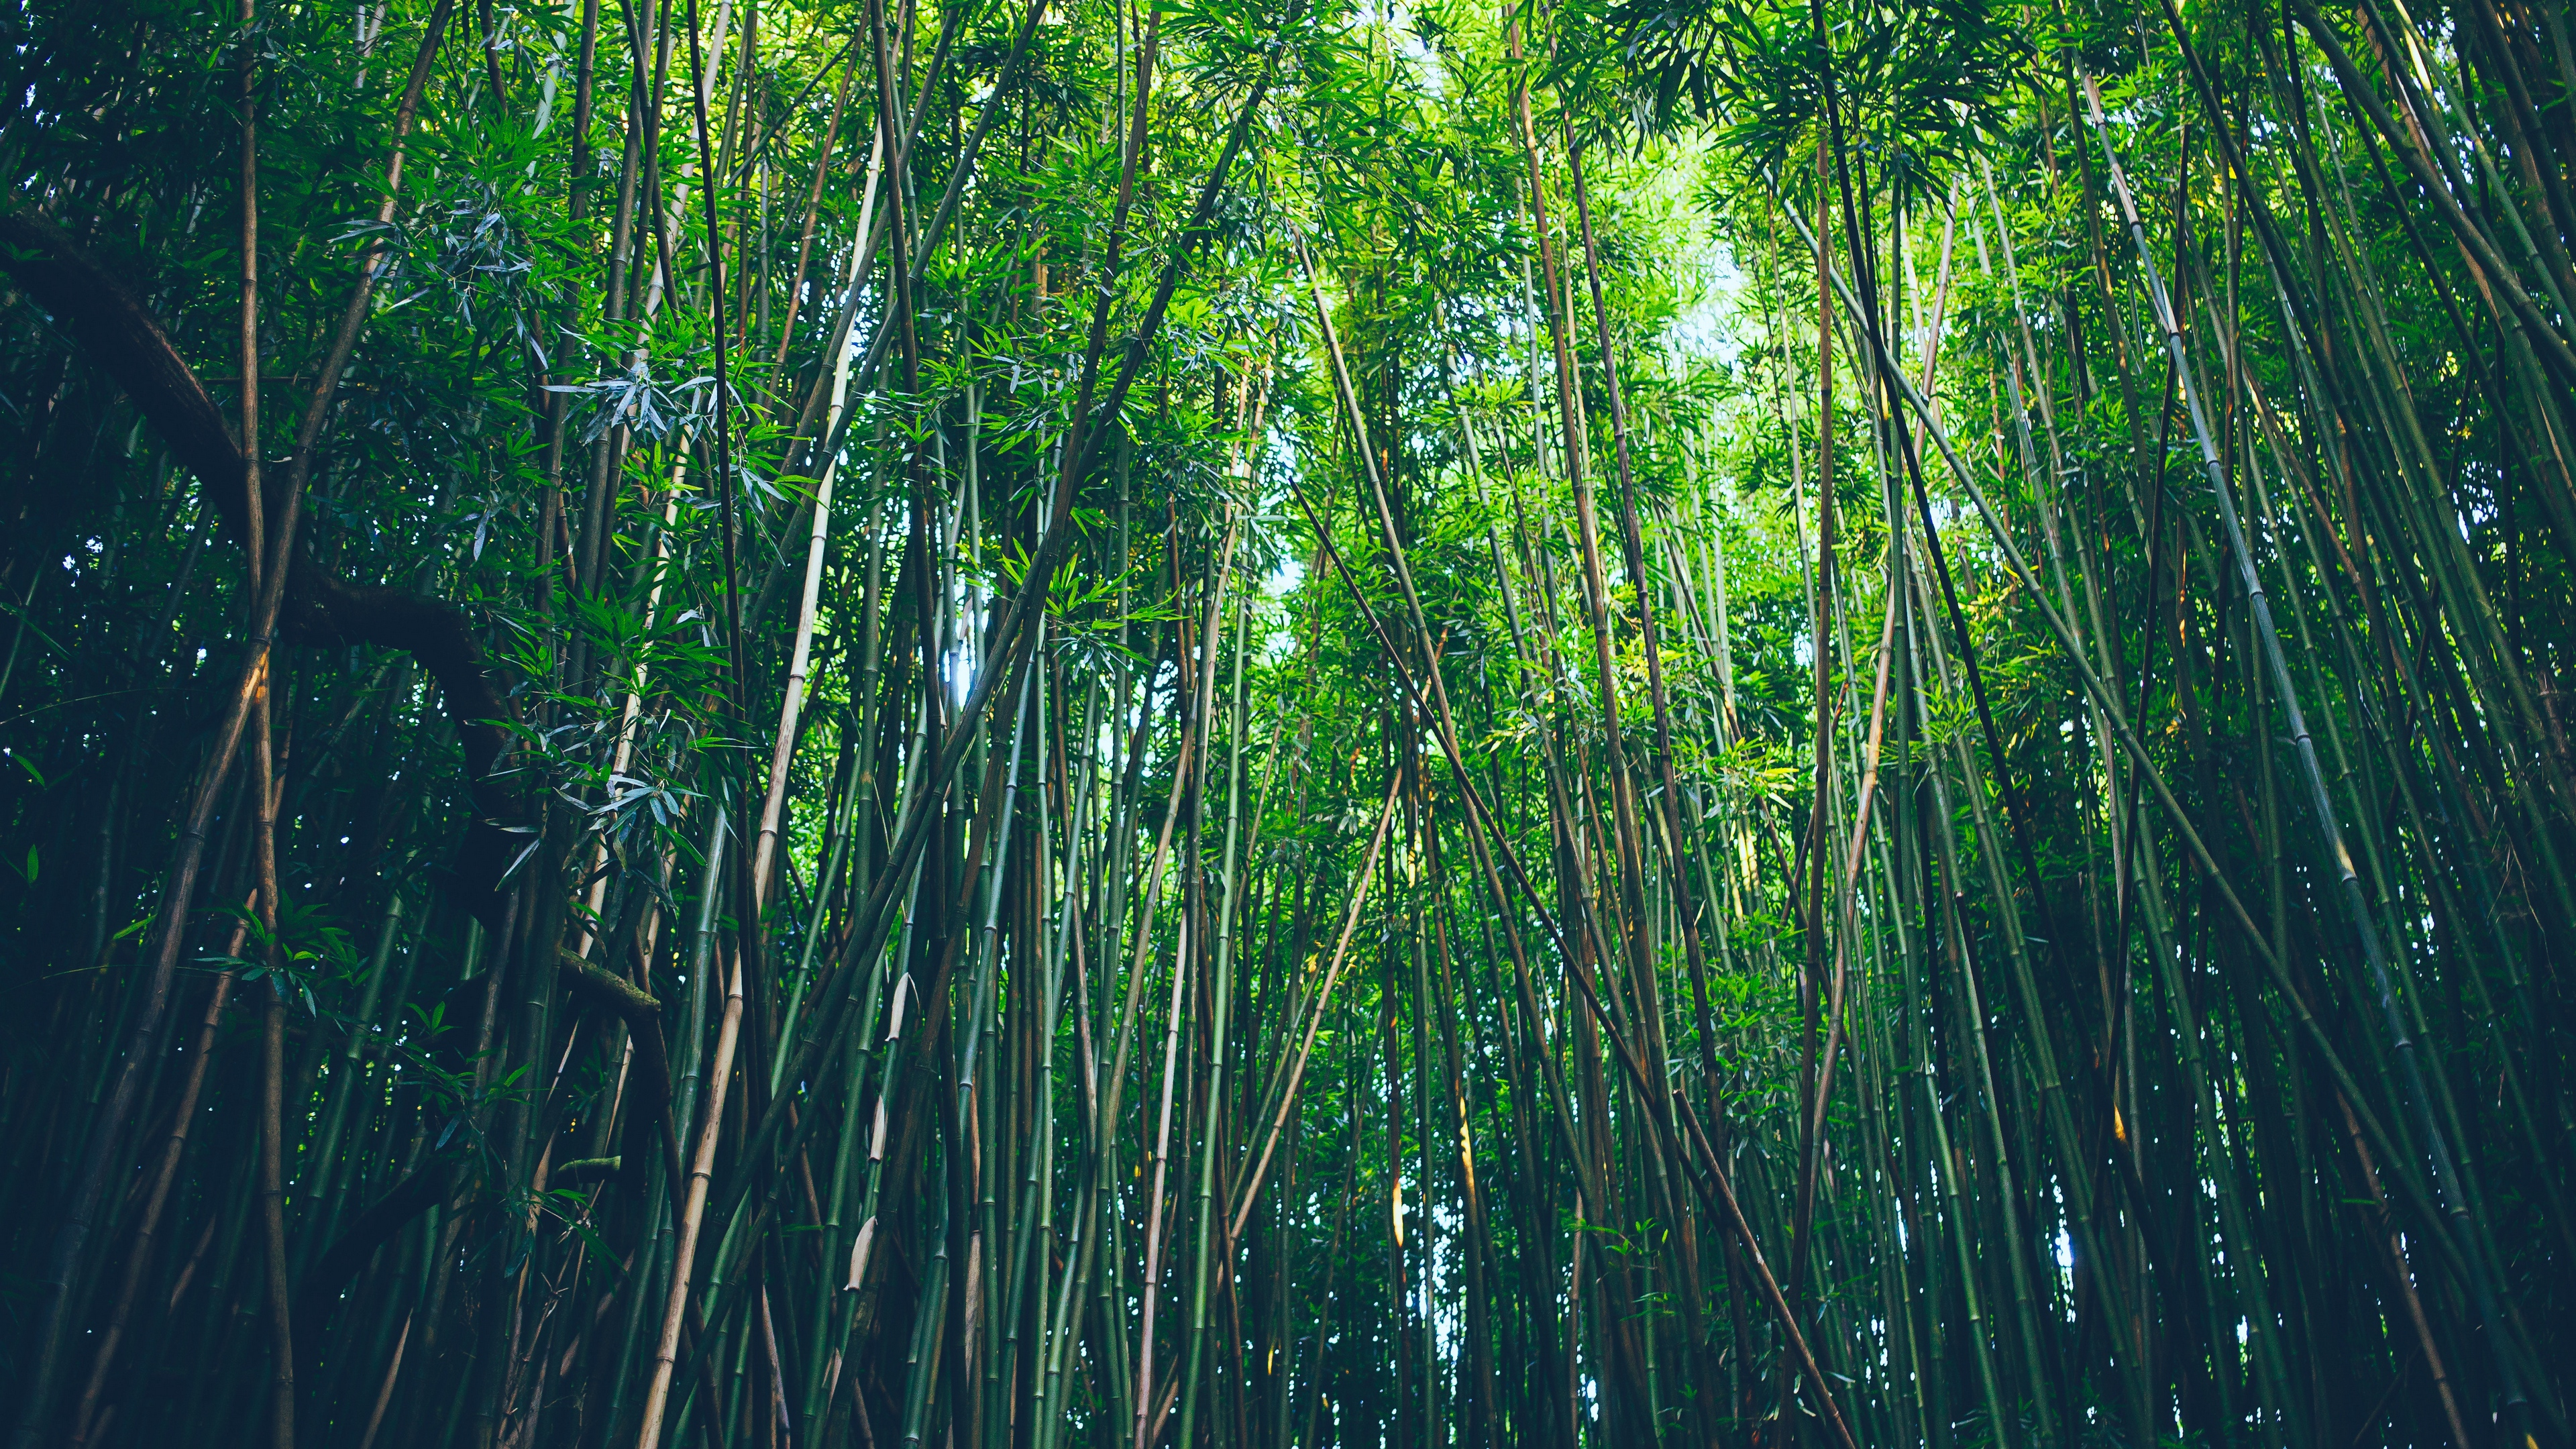 bamboo trees thickets 4k 1541117412 - bamboo, trees, thickets 4k - Trees, thickets, bamboo